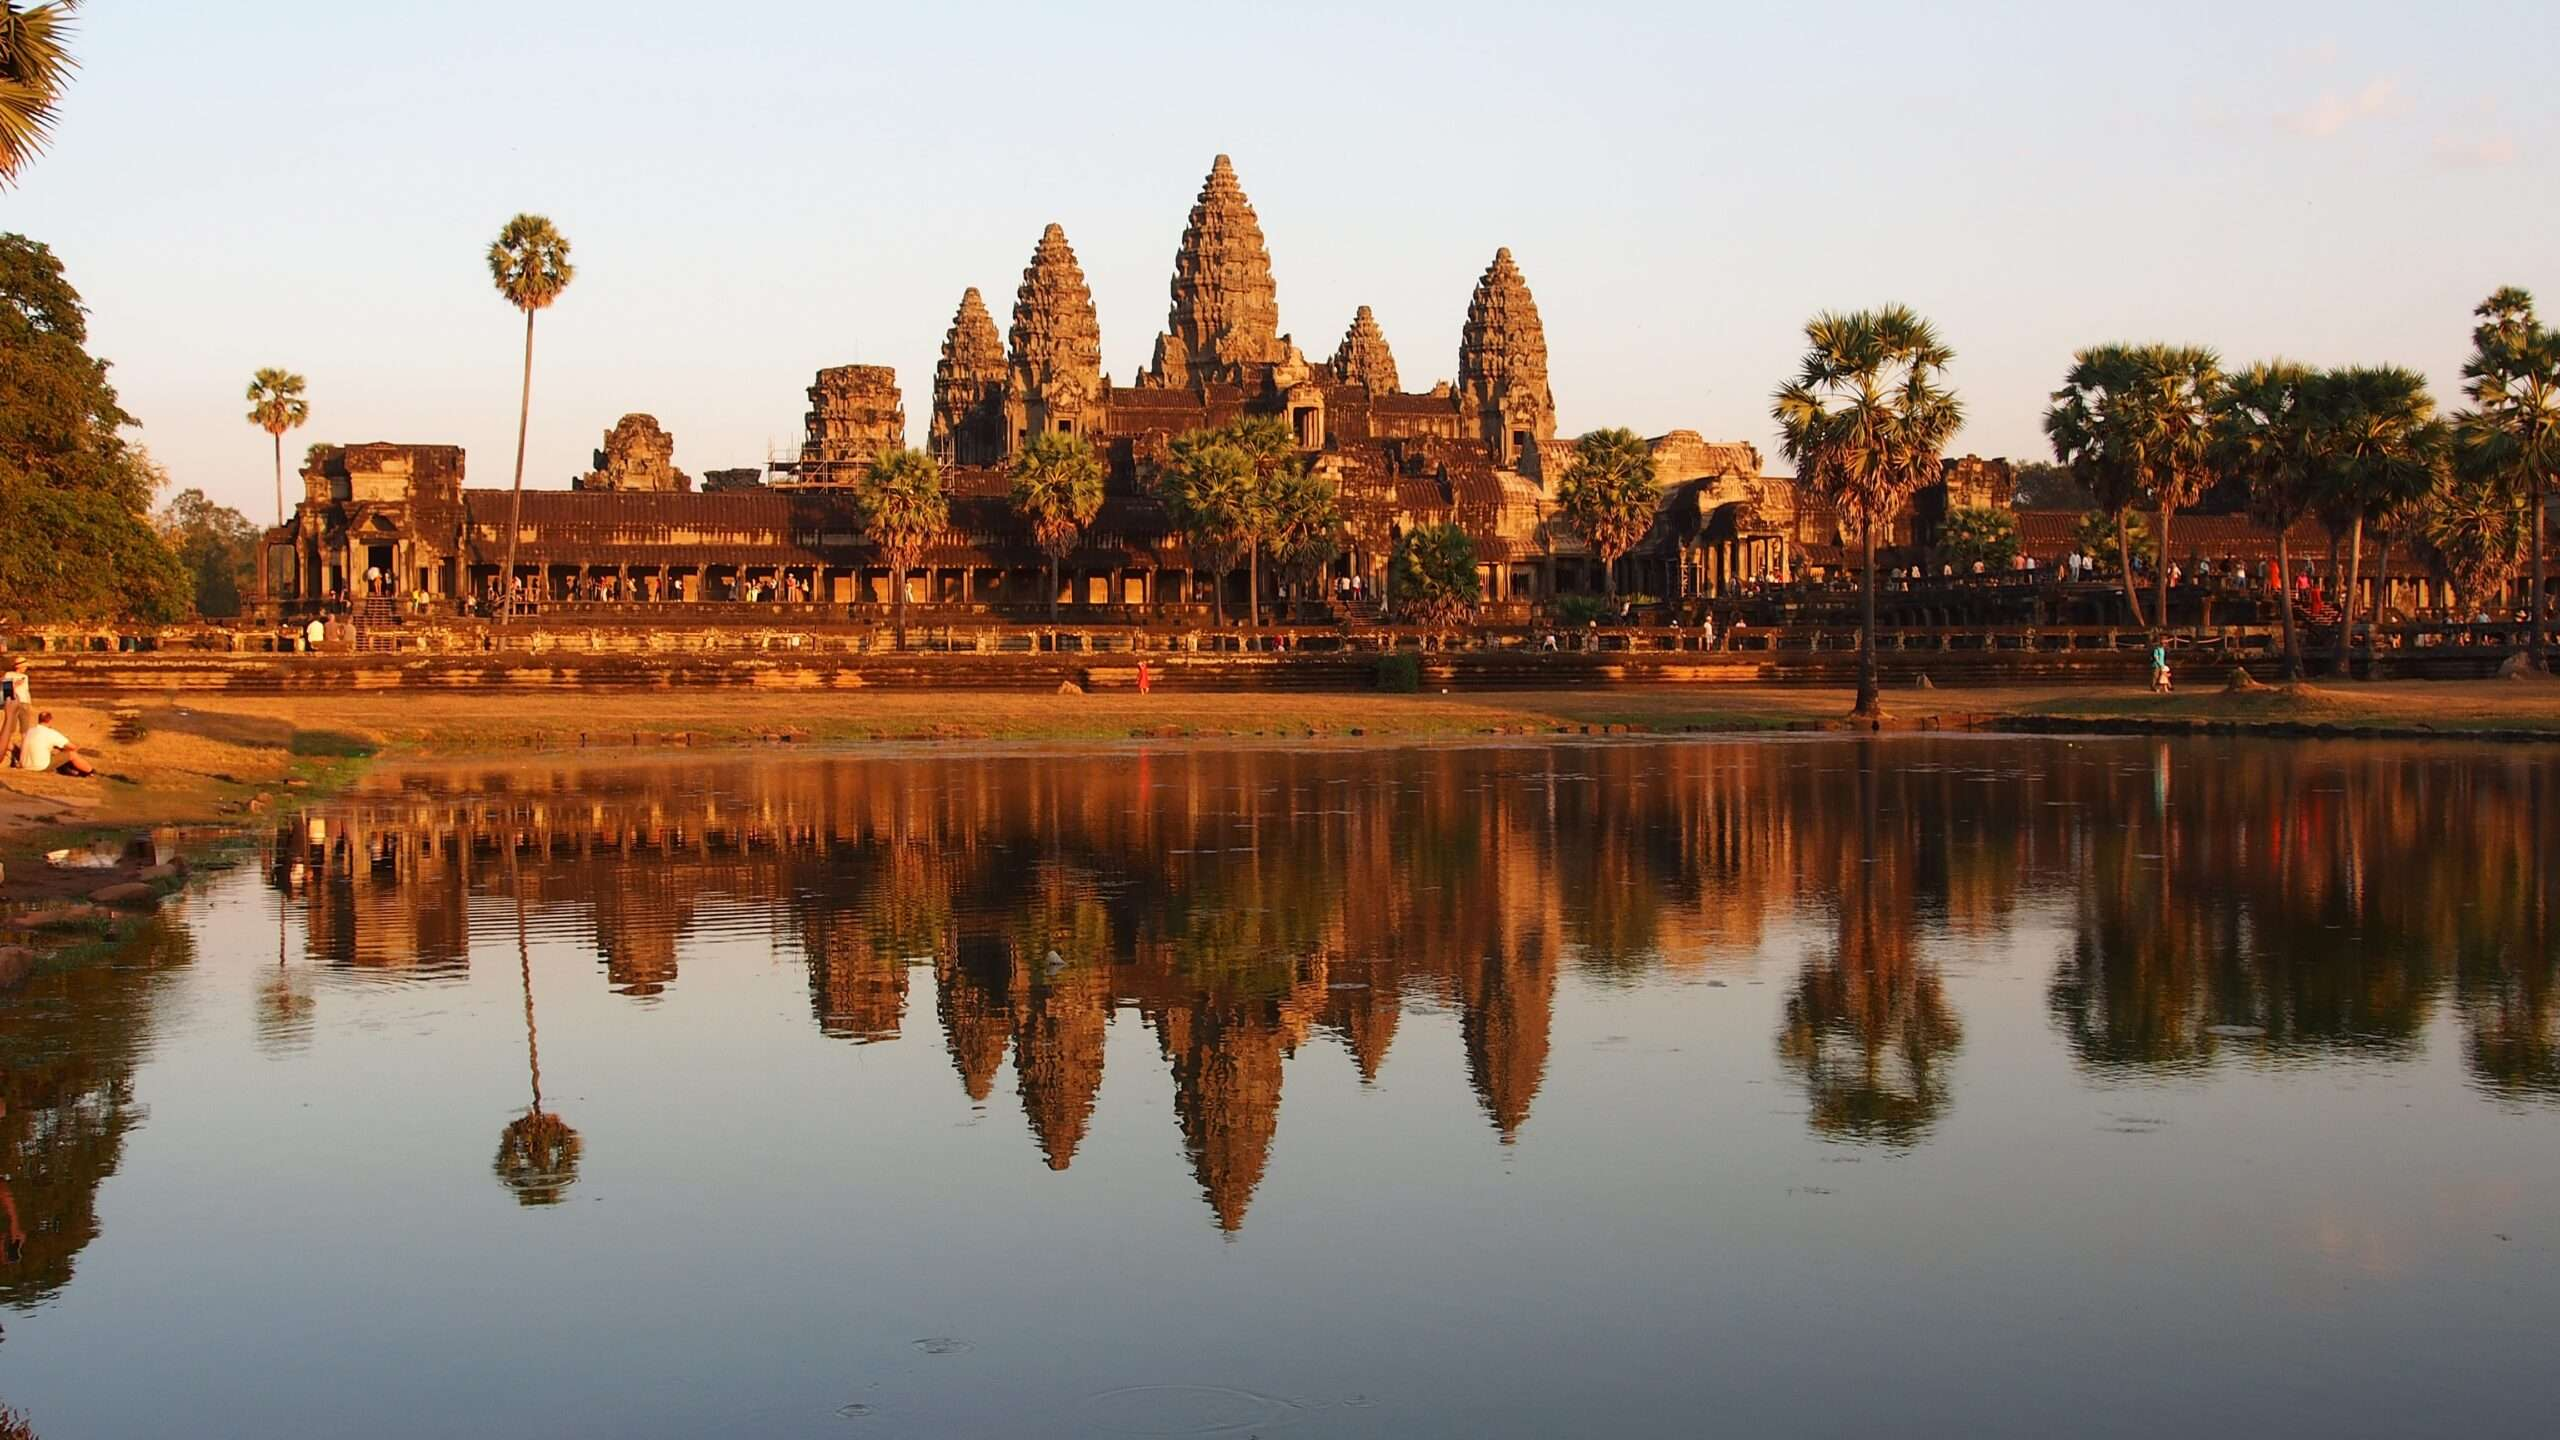 Angkor Wat Buddhist Temples in Cambodia, seen from across the water at sunrise